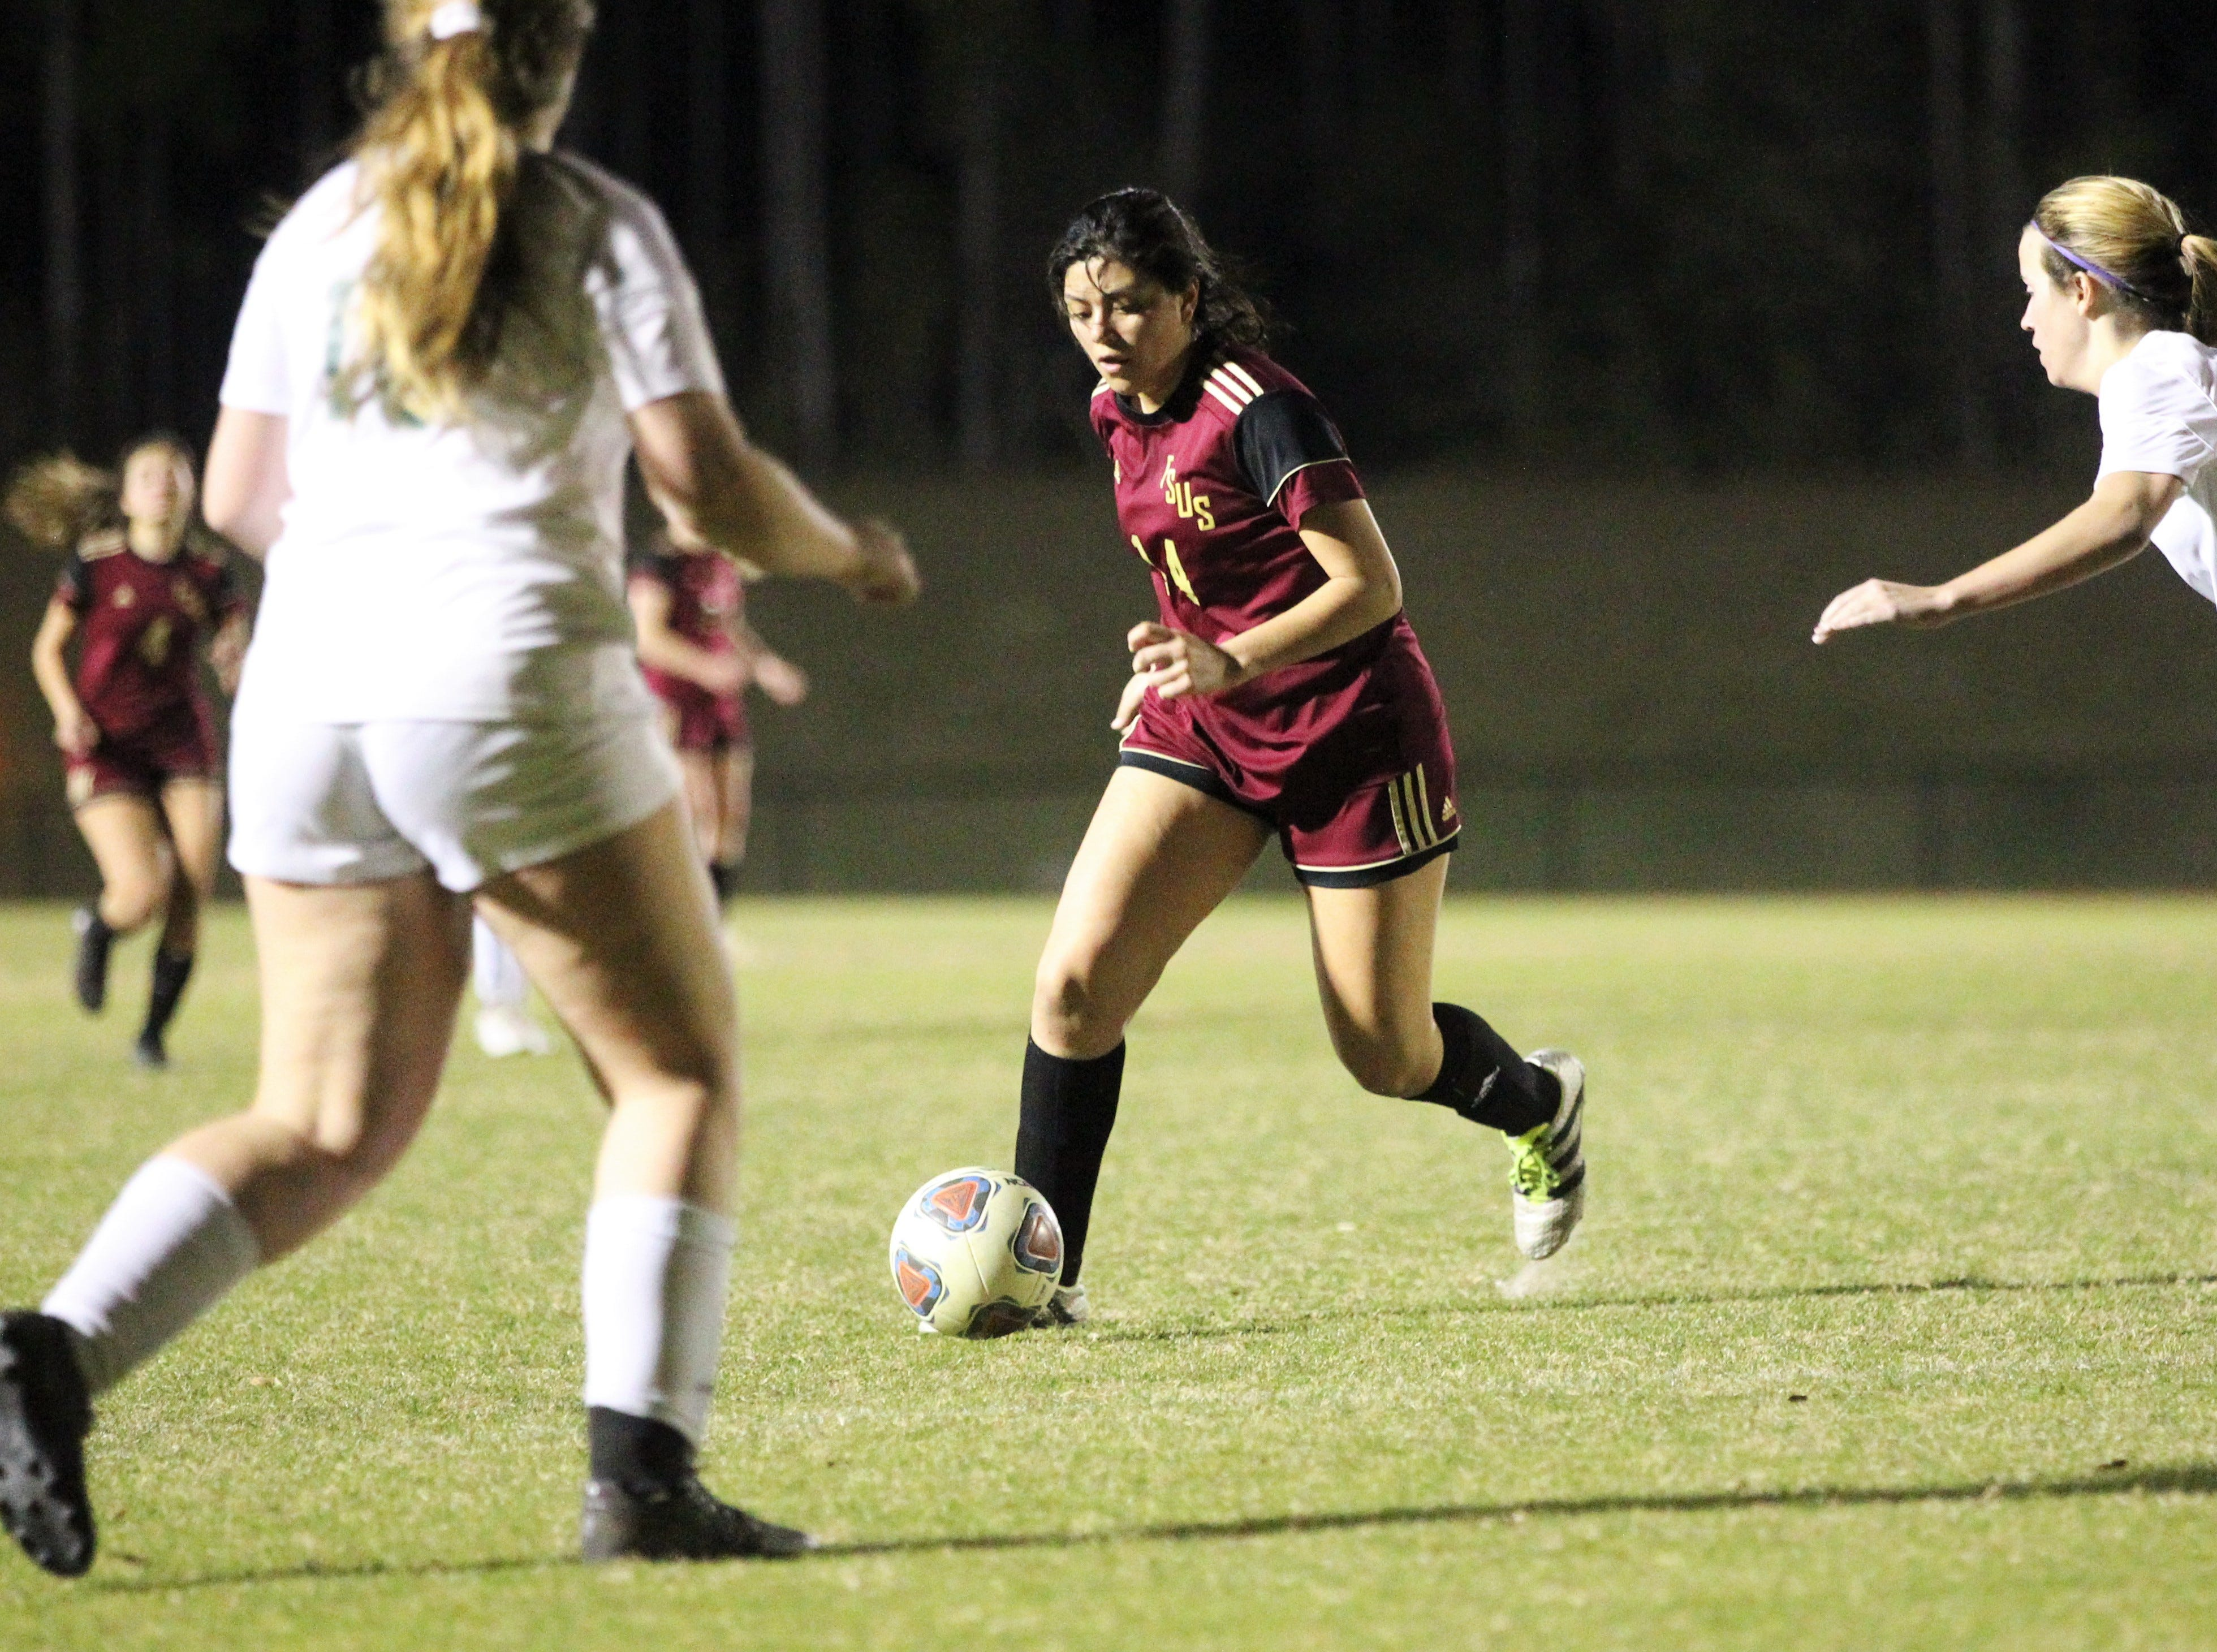 Florida High's Rubi Castro dribbles at the top of the box as South Walton's girls soccer team edged the Seminoles 5-4 in a penalty-kick shootout during a Region 1-2A semifinal on Feb. 8, 2019.